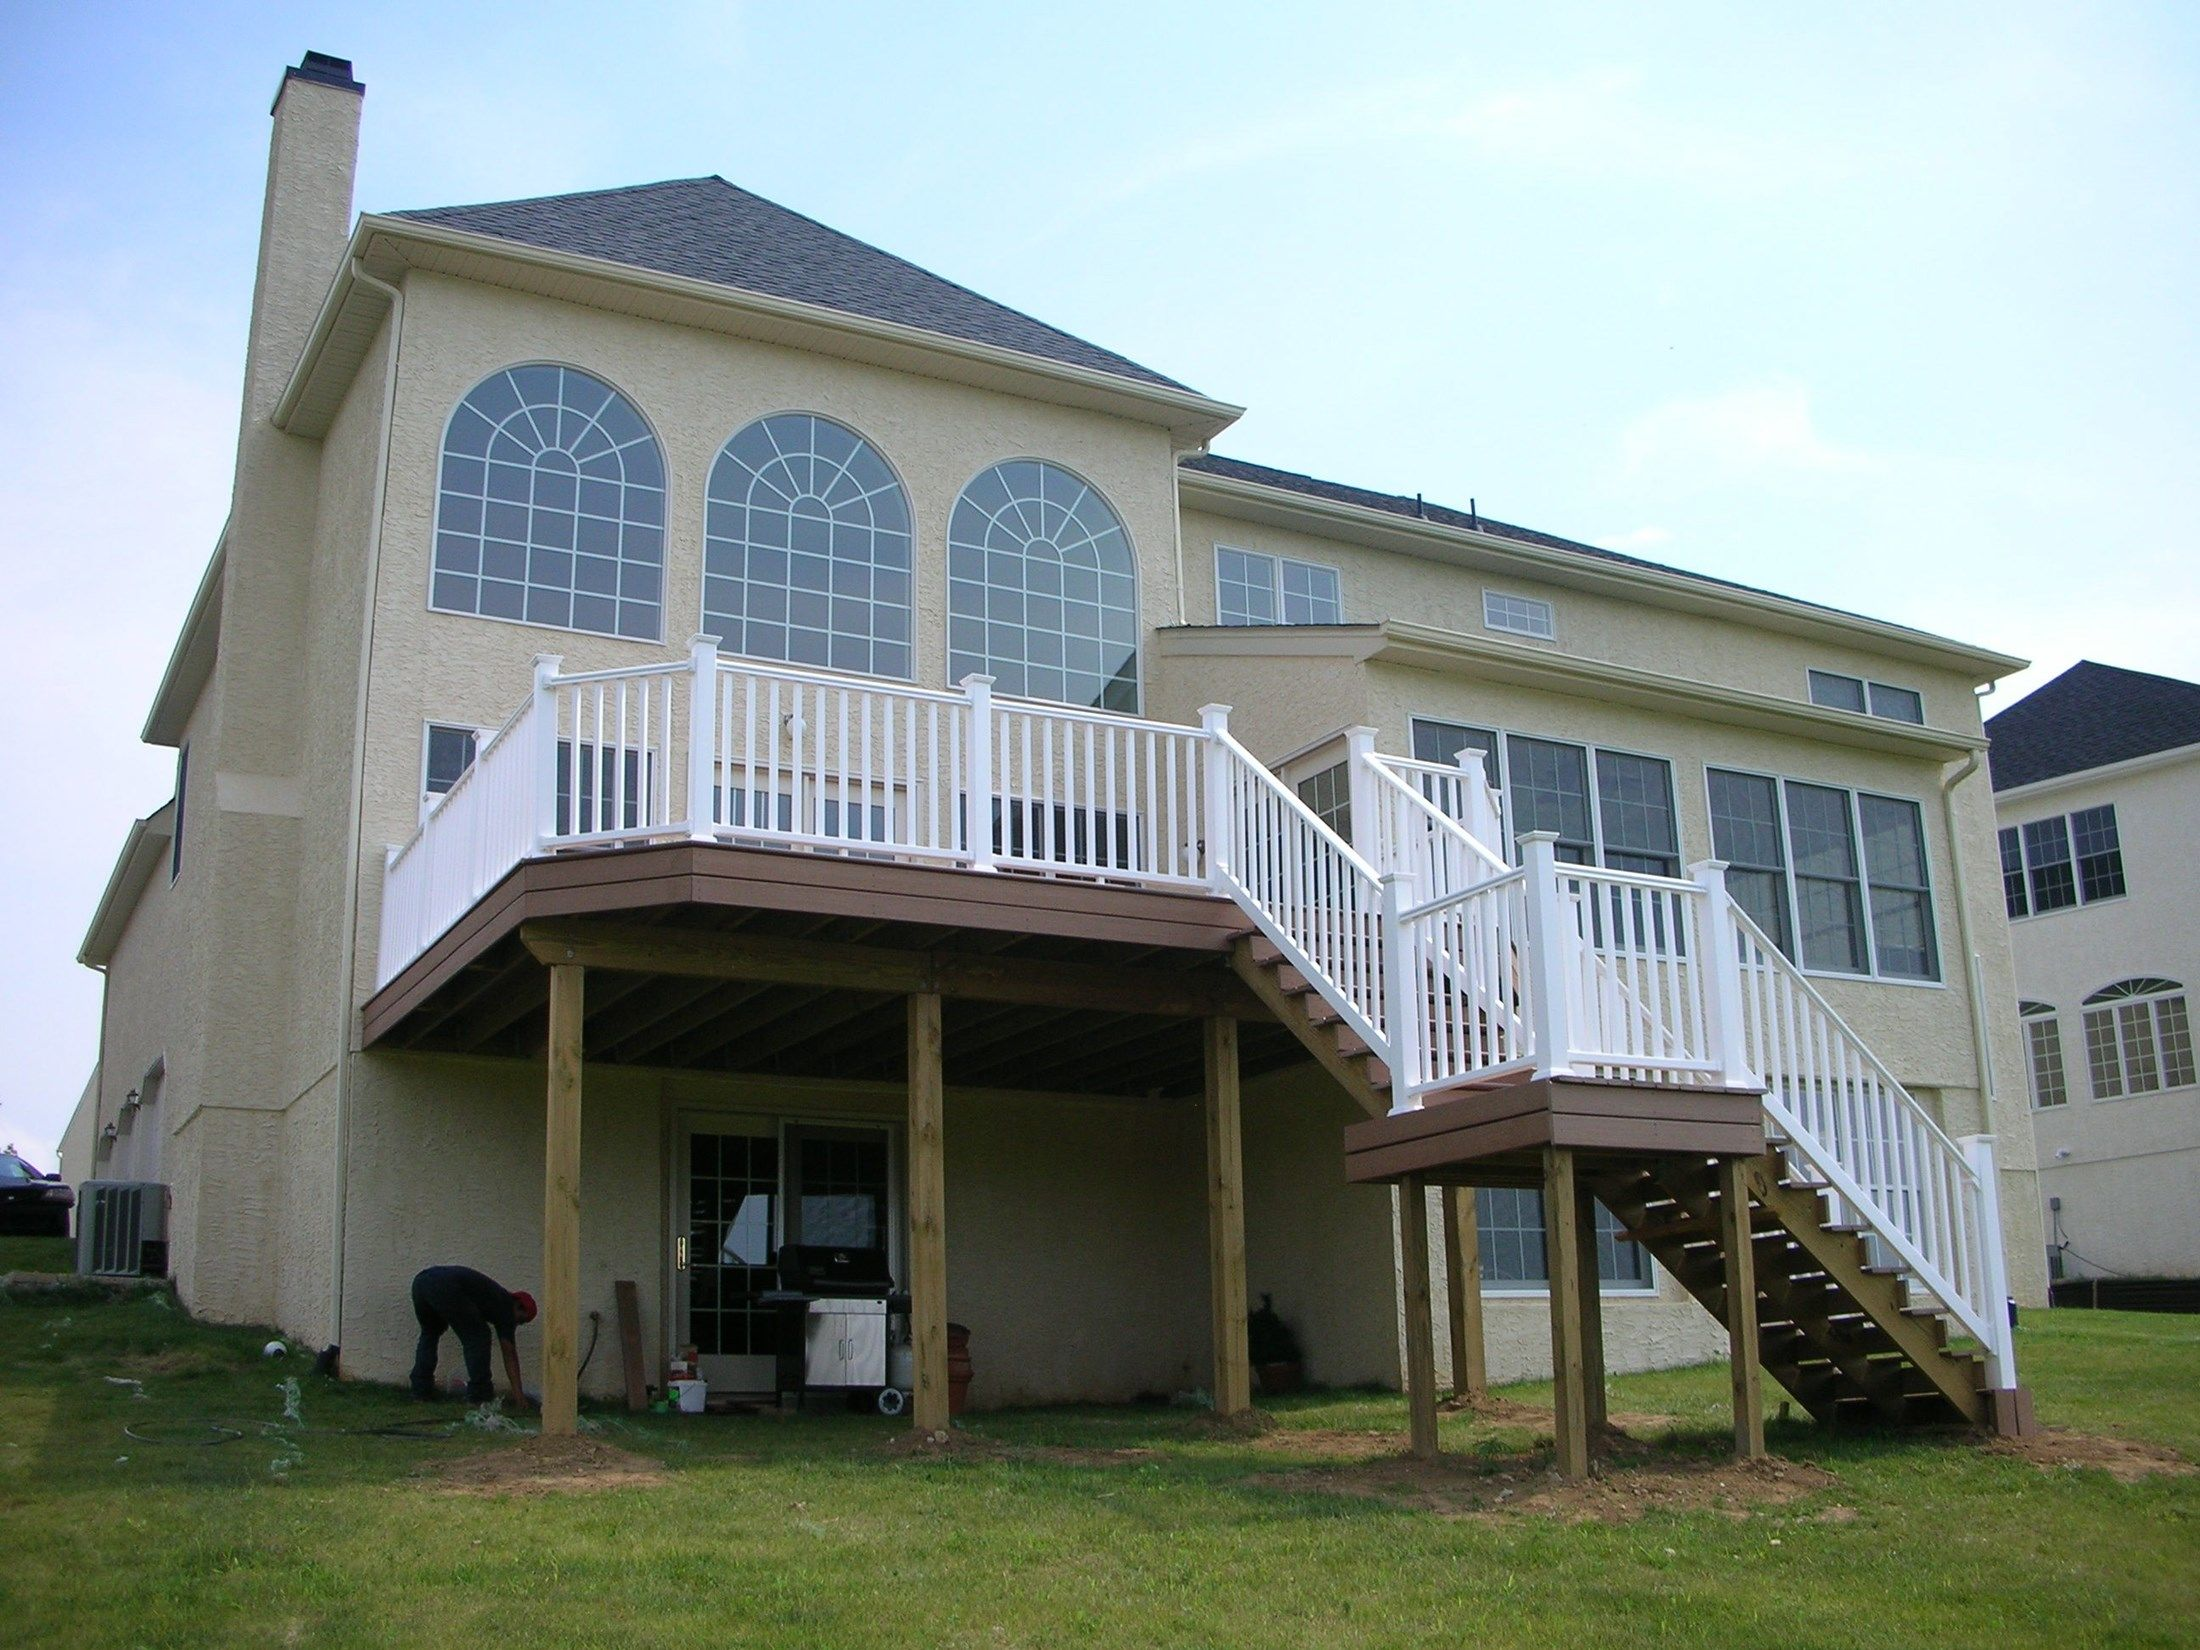 Composite Decks With PVC Vinyl Railing - Picture 6437